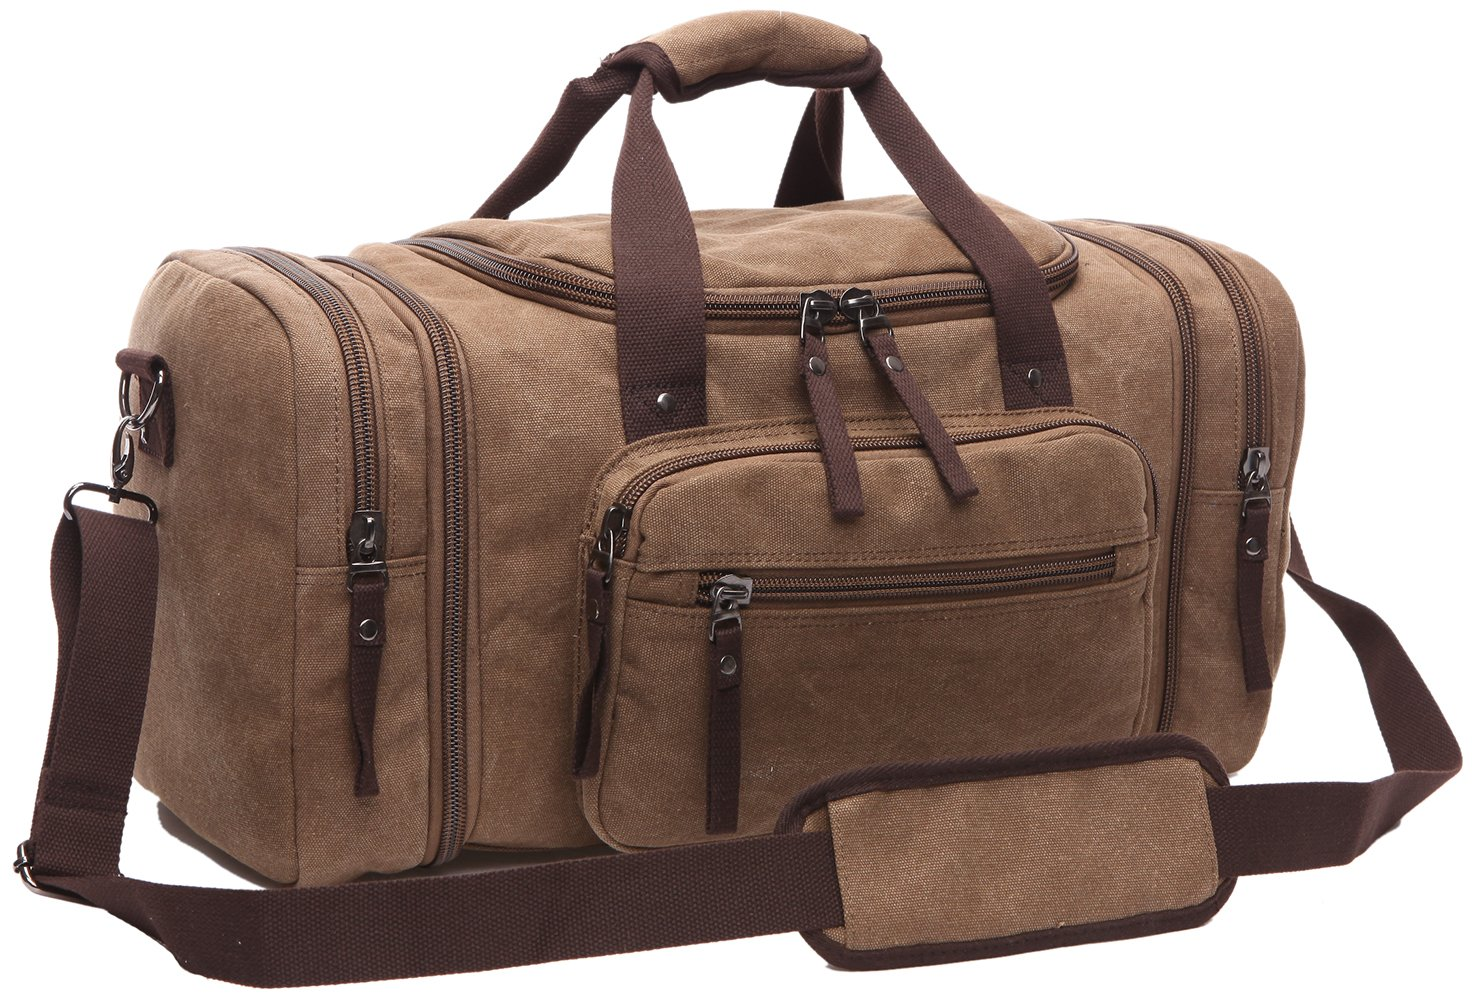 ZUOLUNDUO Vintage Oversized Canvas Travel Luggage Bag Weekend Duffel Handbags 8642ST1,Coffee